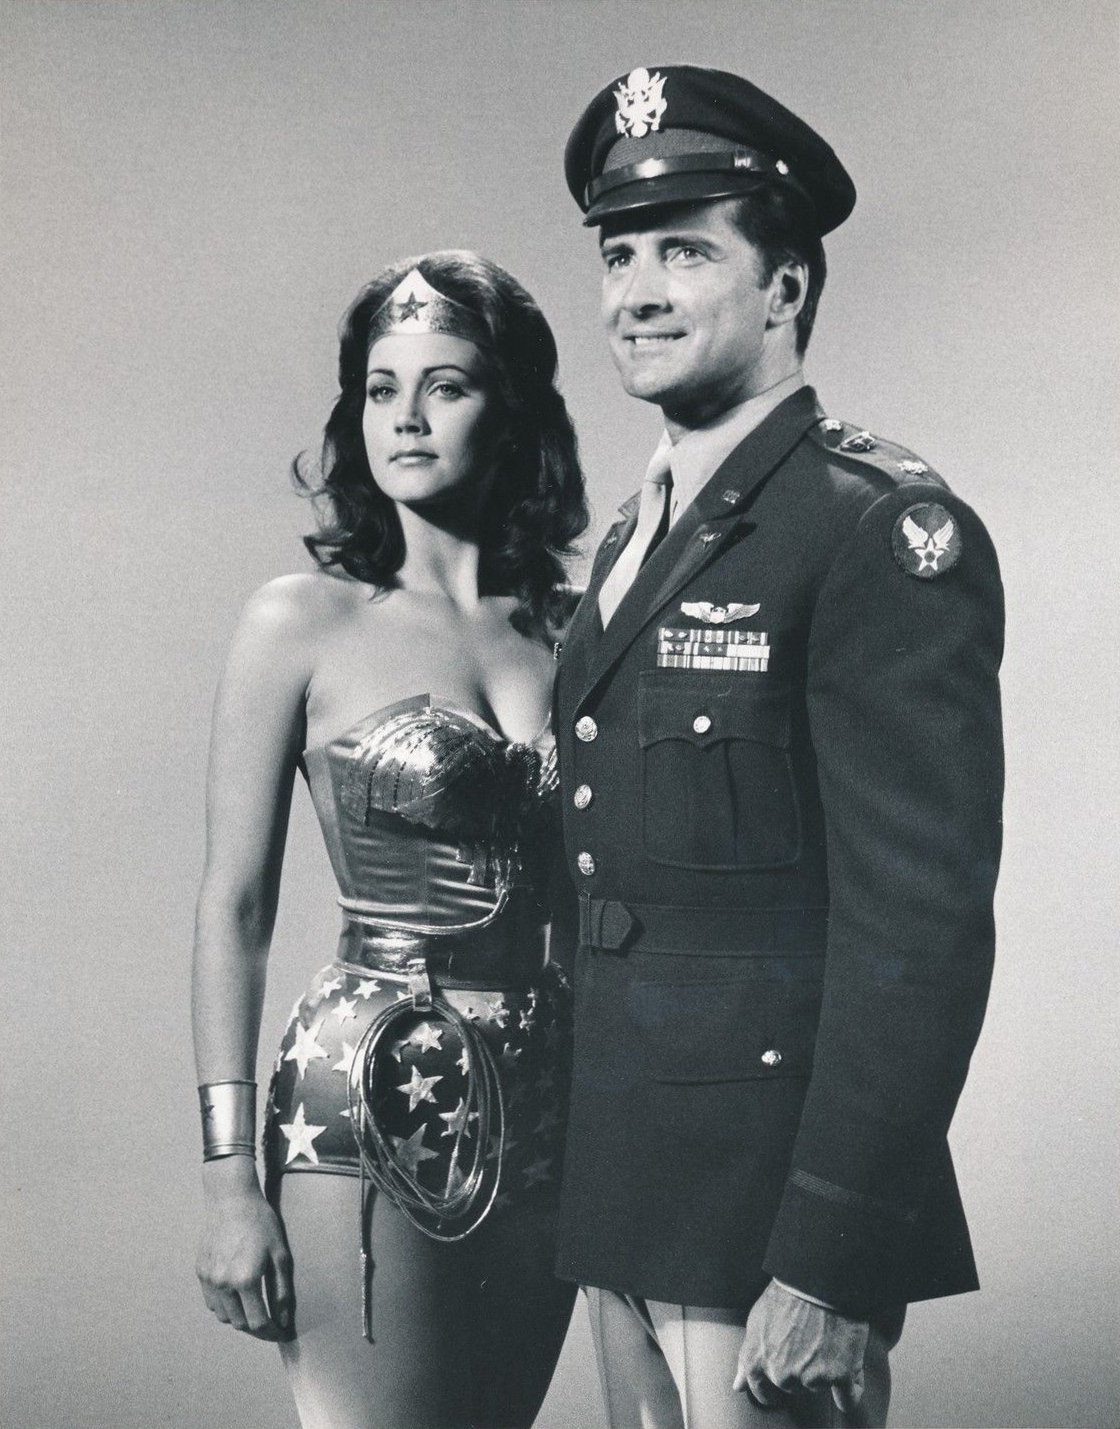 """Lynda Carter and Lyle Waggoner star in """"Fausta: The Nazi Wonder Woman"""" circa 1976 